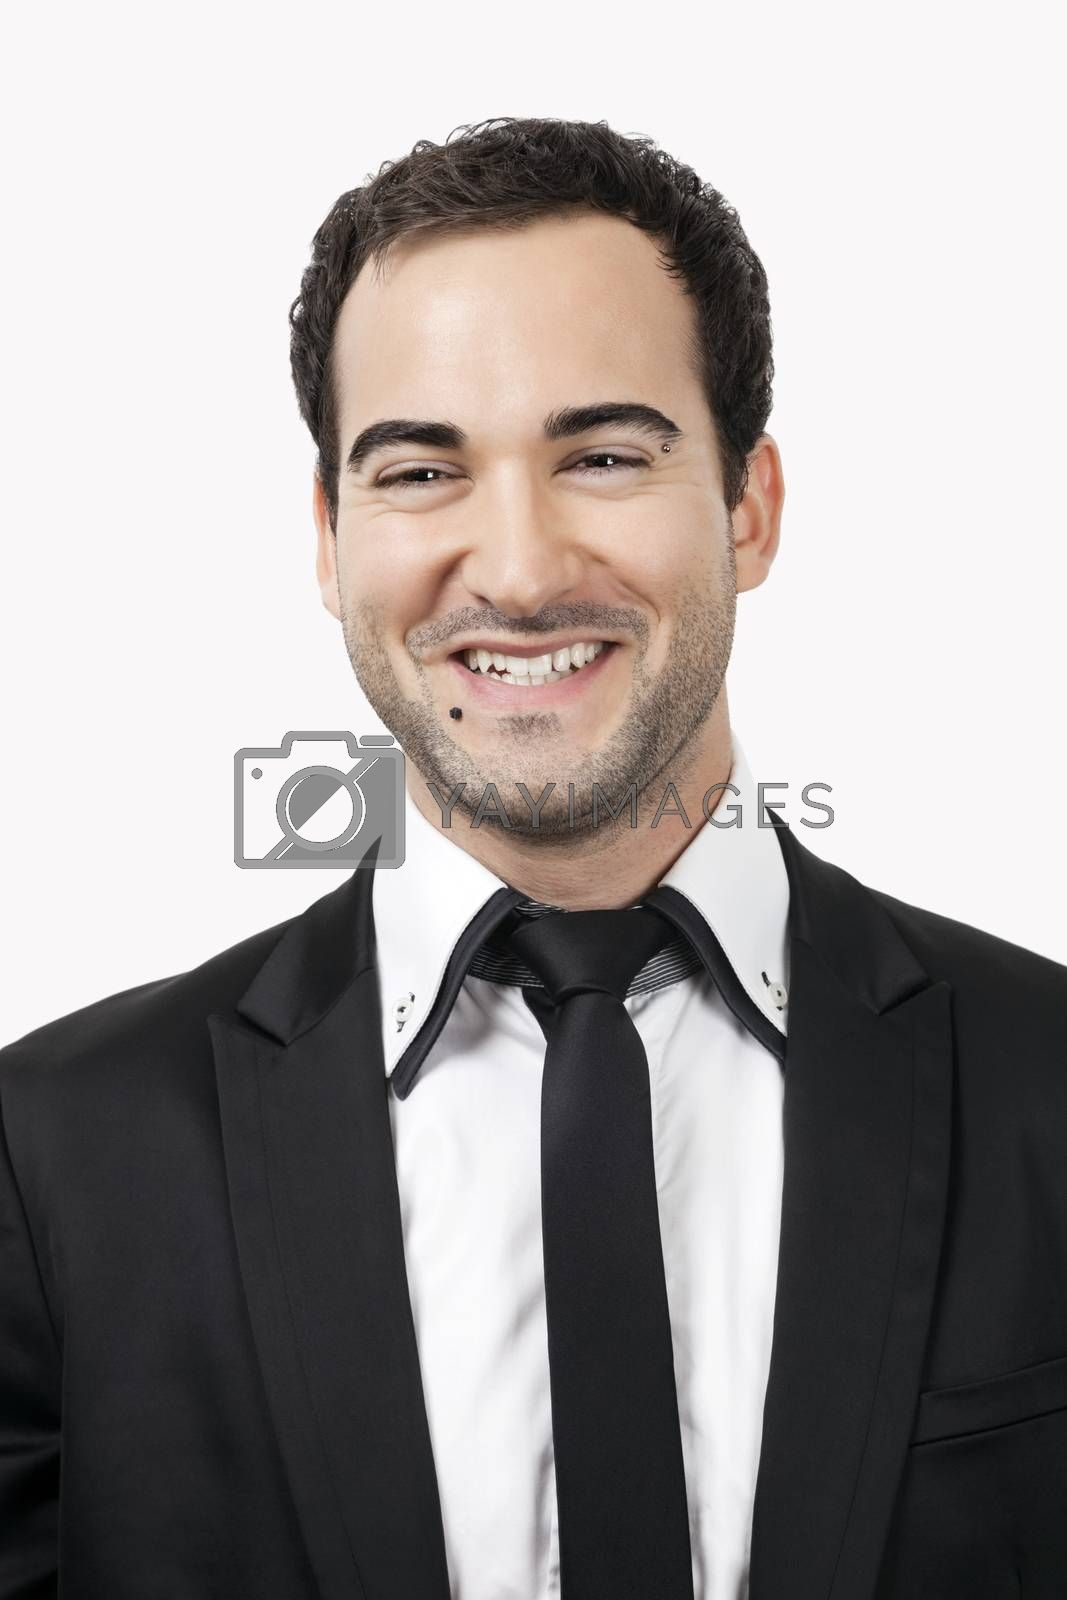 Portrait of young Caucasian businessman against white background